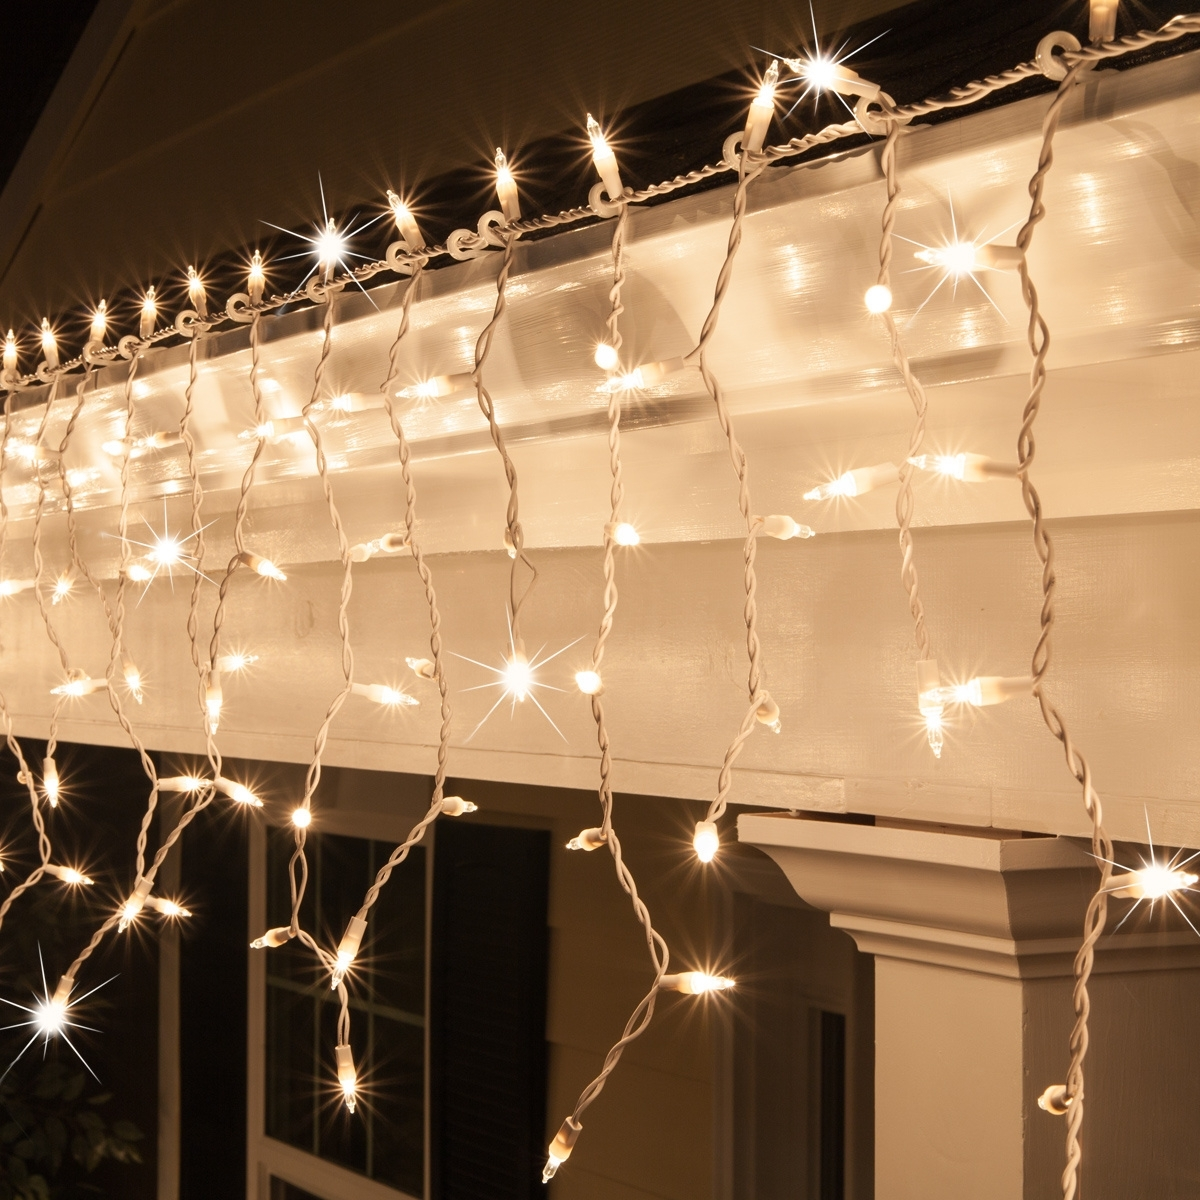 Outdoor Hanging Icicle Lights With Regard To Well Known Christmas Icicle Light – 150 Clear Twinkle Icicle Lights – White Wire (View 4 of 20)